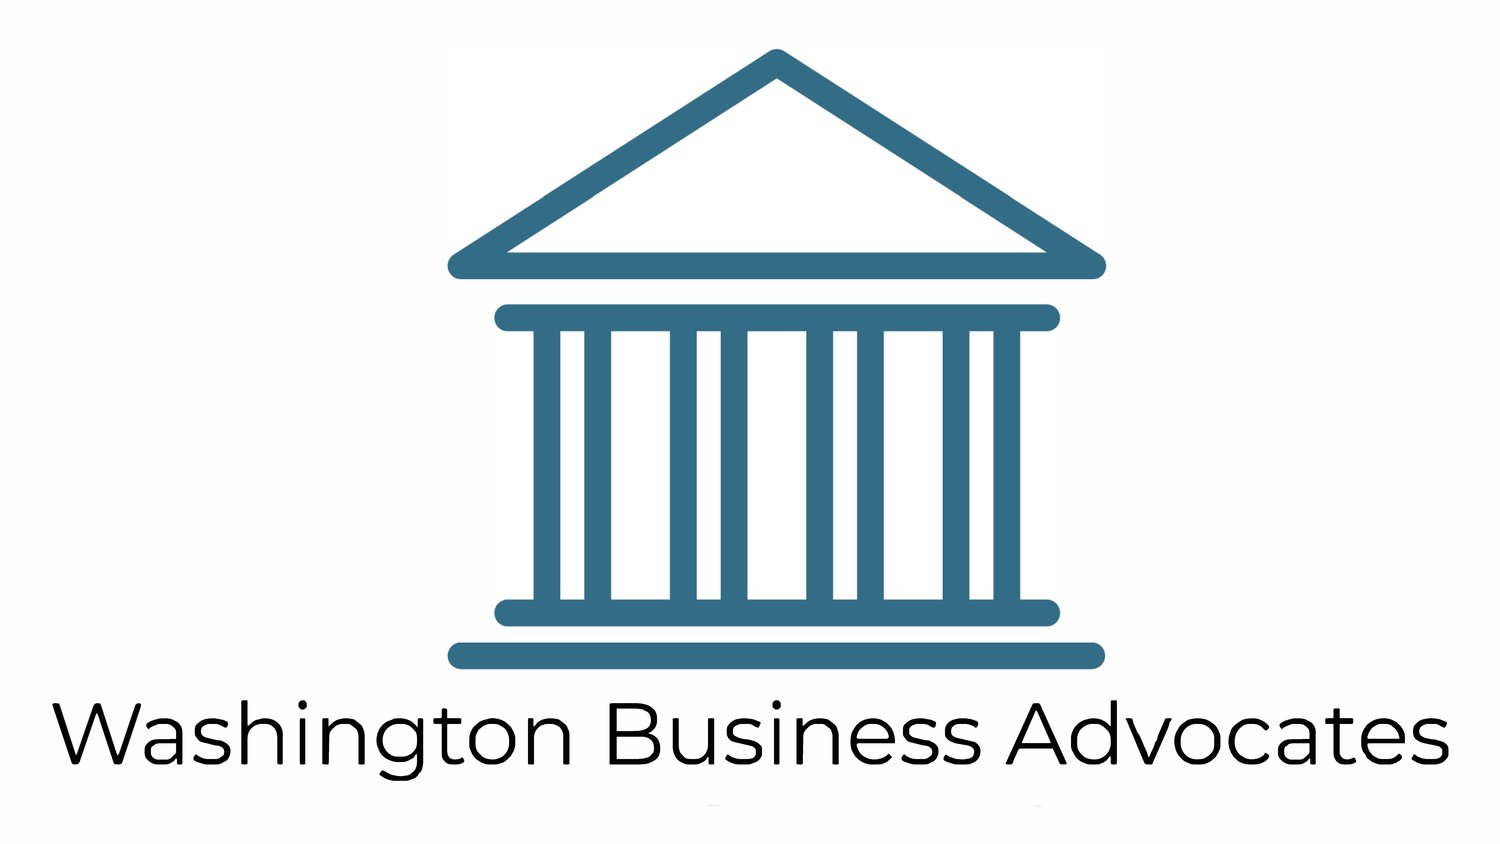 Washington Business Advocates PLLC - L&I Workers Compensation Audit Help for Business Owners